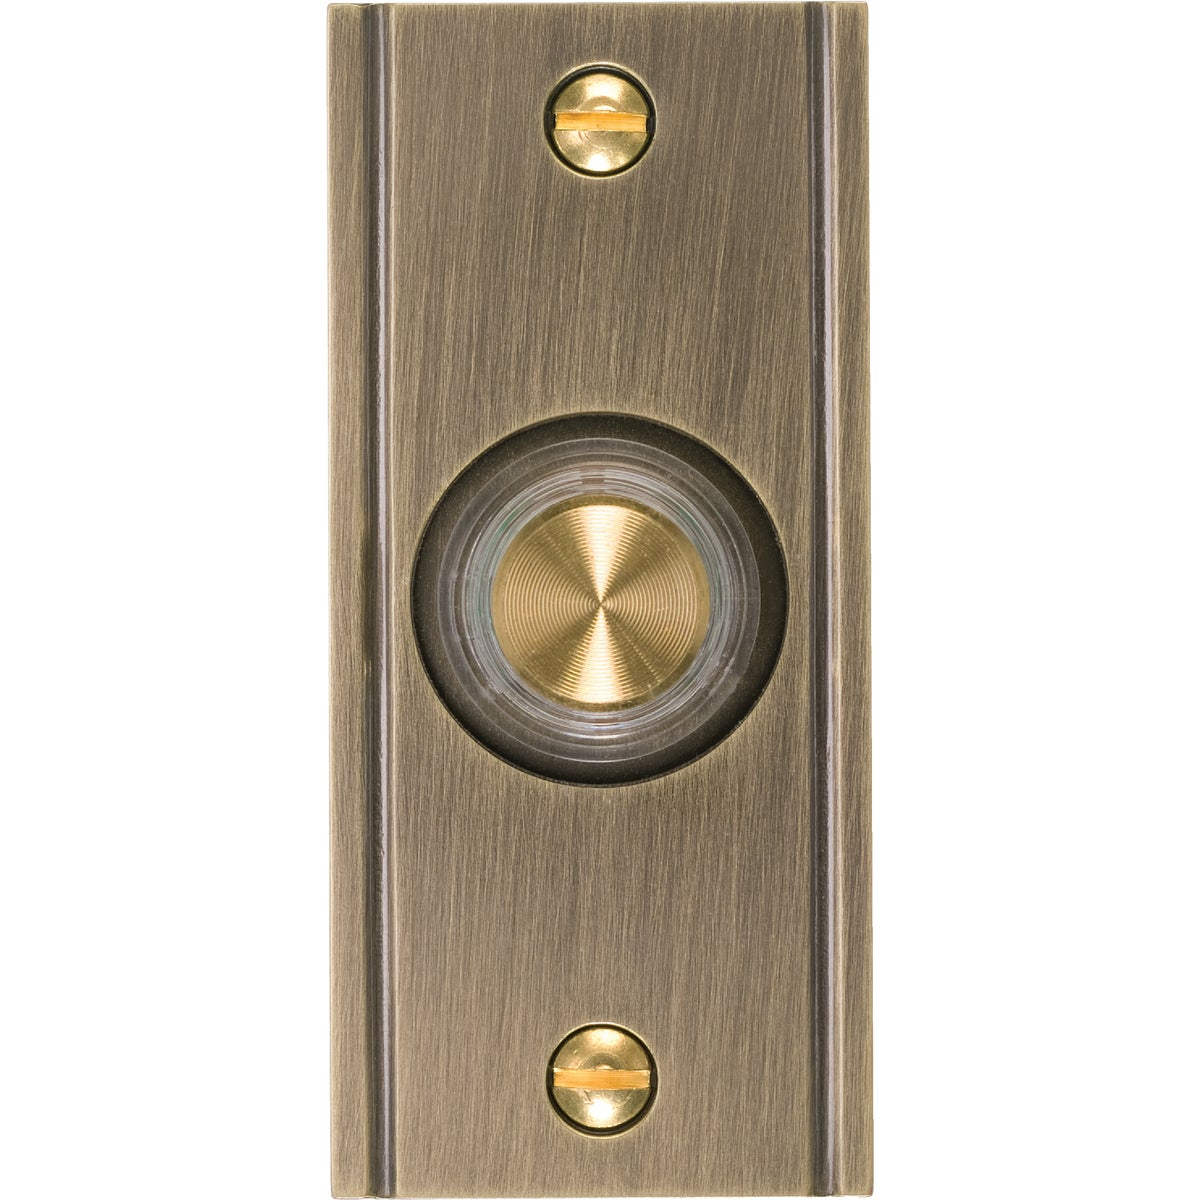 AB LIGHTED PUSHBUTTON - DH1631L by Thomas & Betts